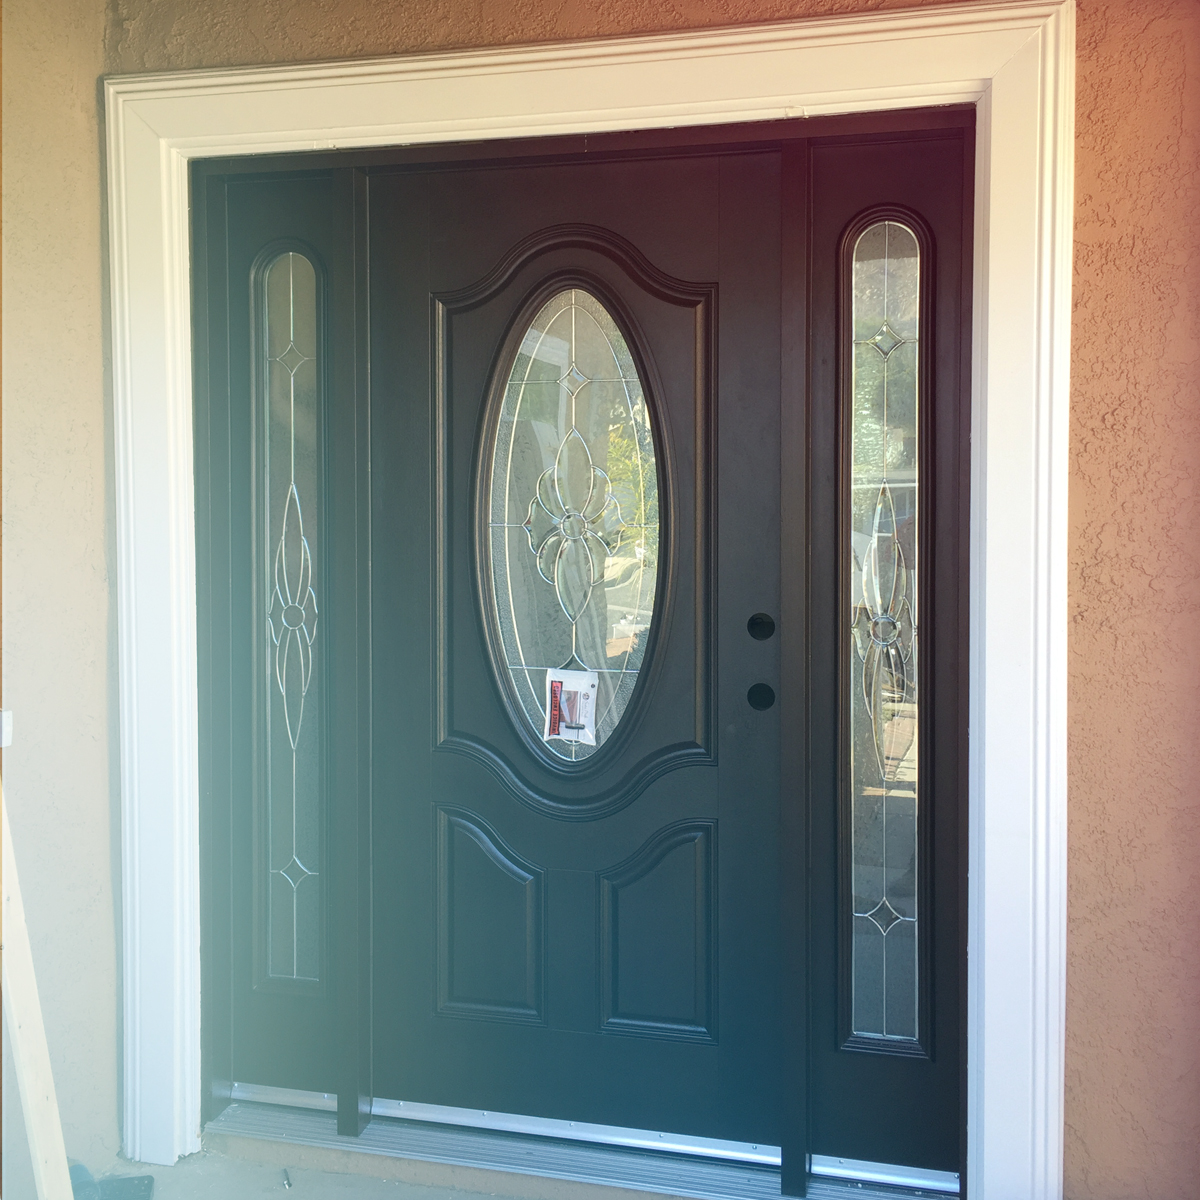 Some of our latest installs. & First Place Glass - First Place Glass Inc.